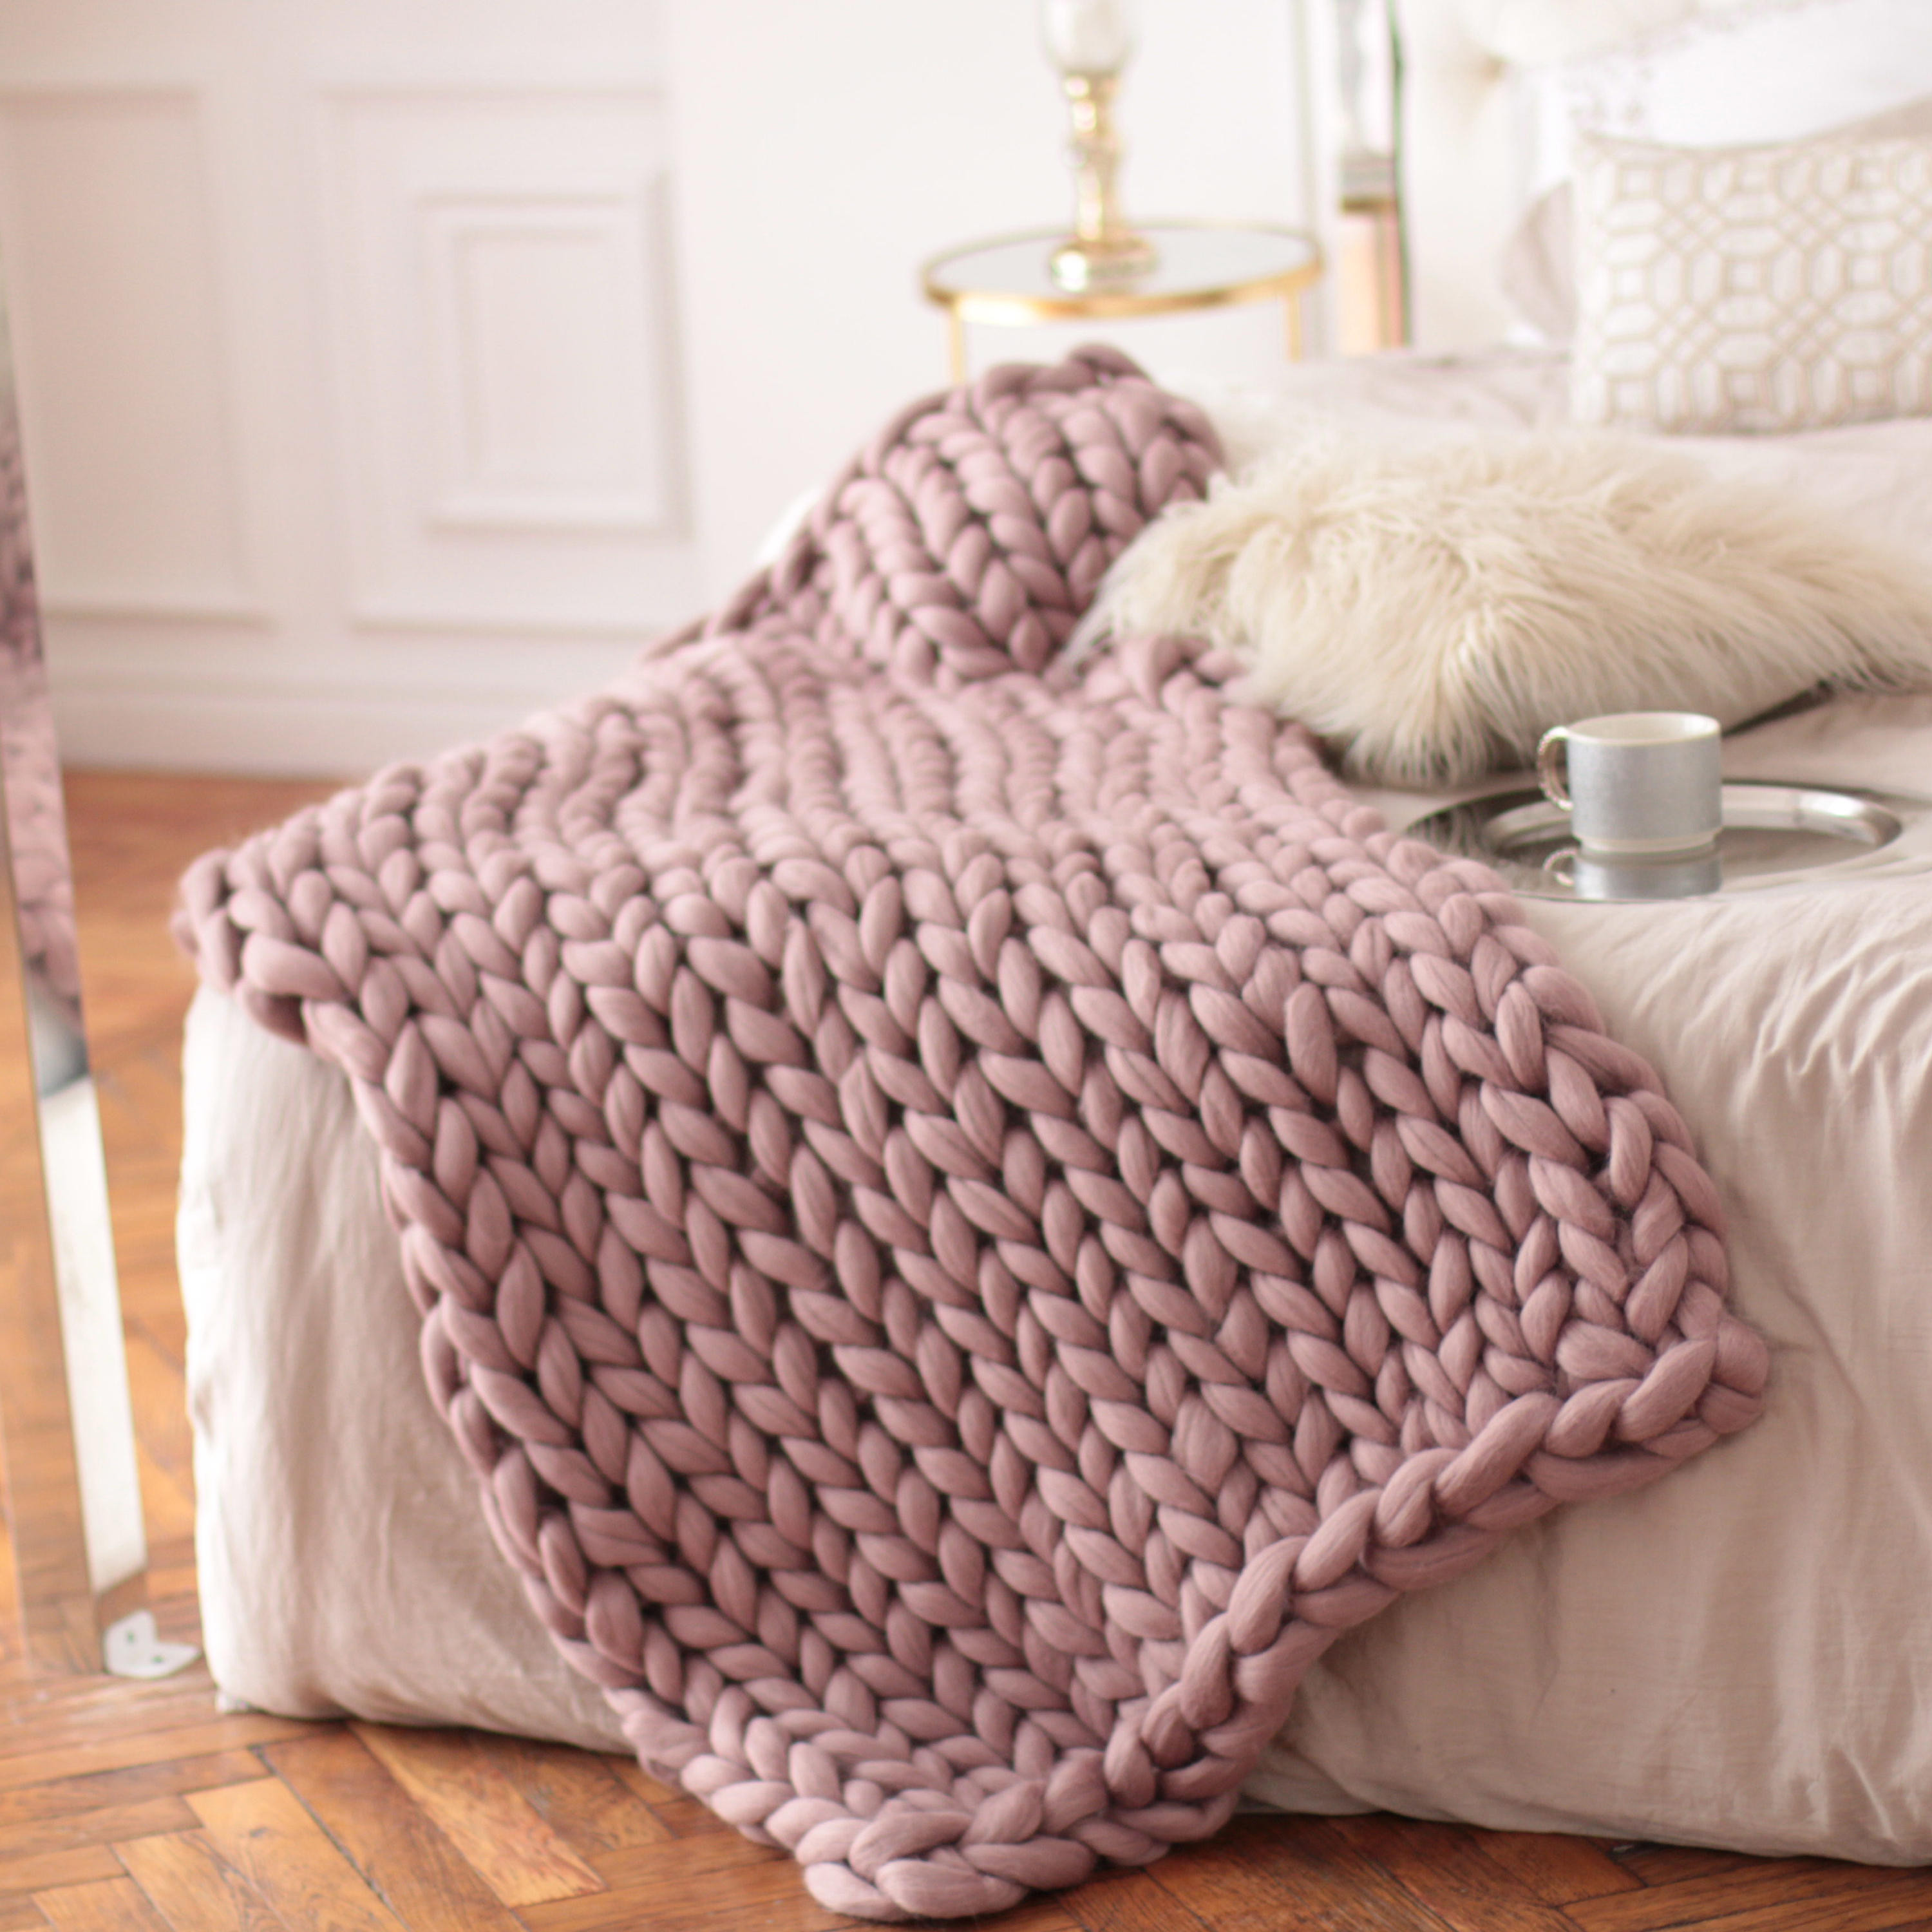 Big Knit Blanket New Wool Hugs Dusty Pink Chunky Knit Blanket Pink Throw Blanket Of Delightful 46 Pictures Big Knit Blanket